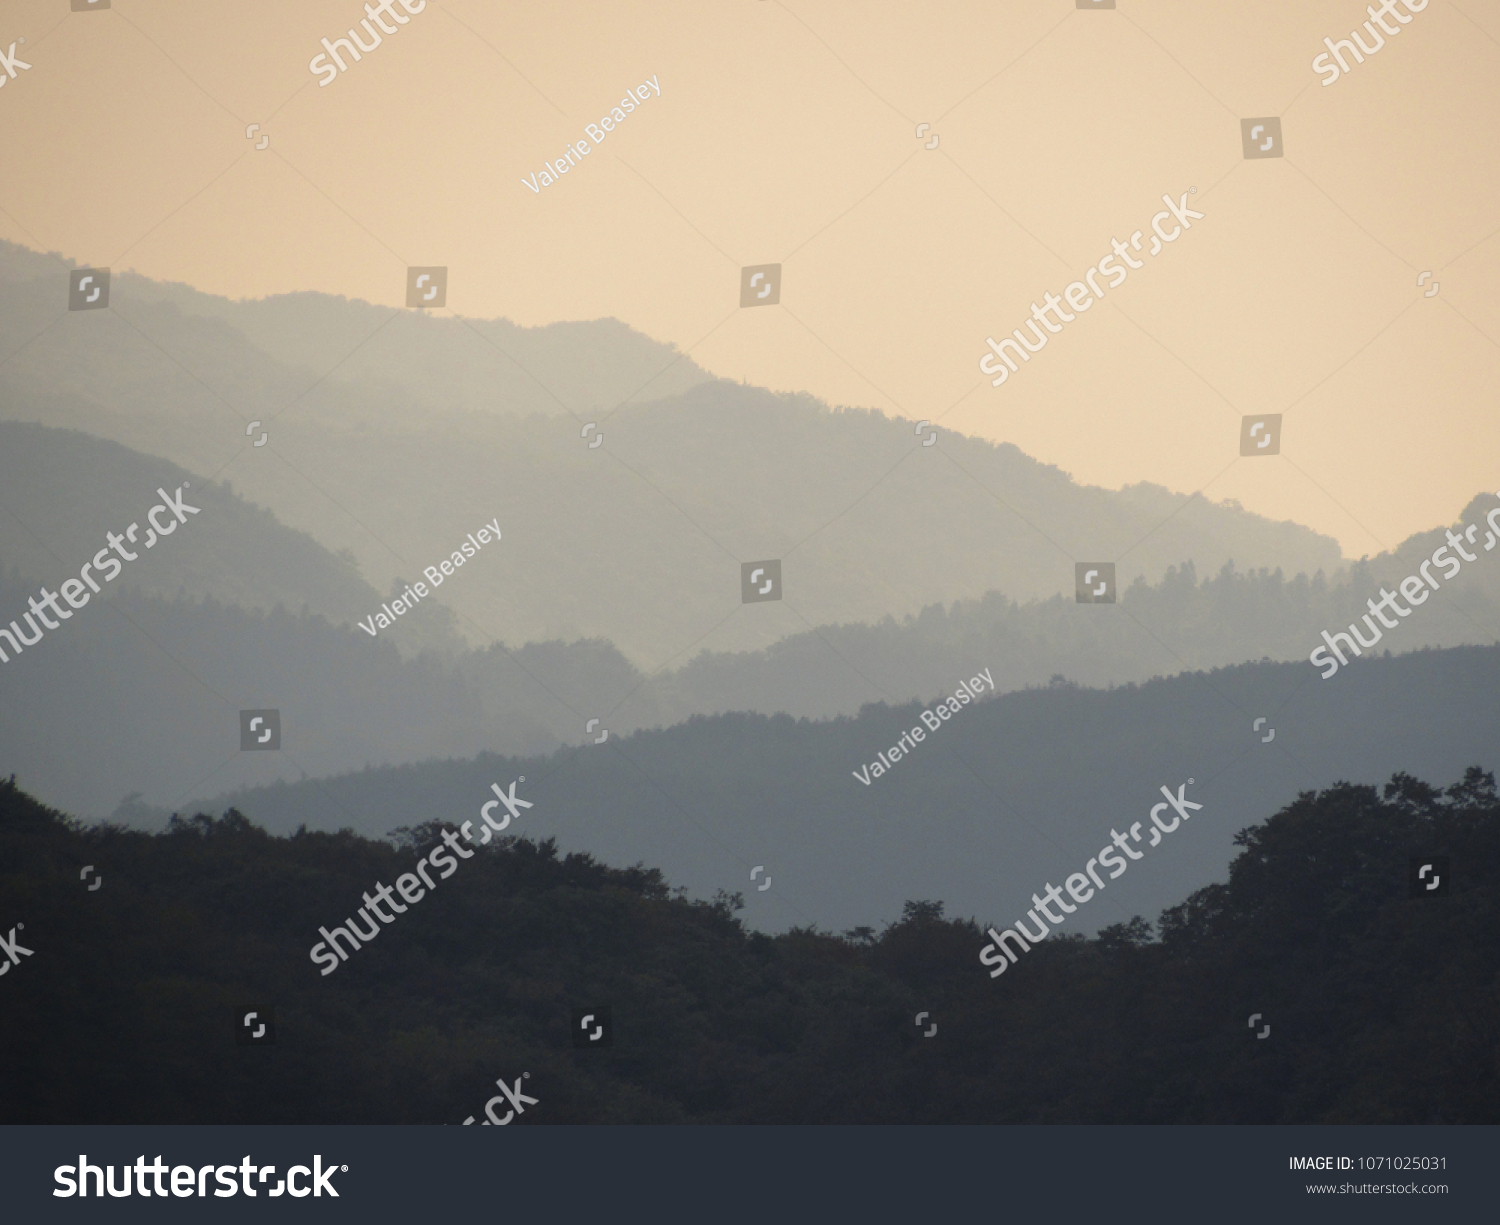 49d4d11f12f2 Ombre Mountains Hunan China Stock Photo (Edit Now) 1071025031 ...